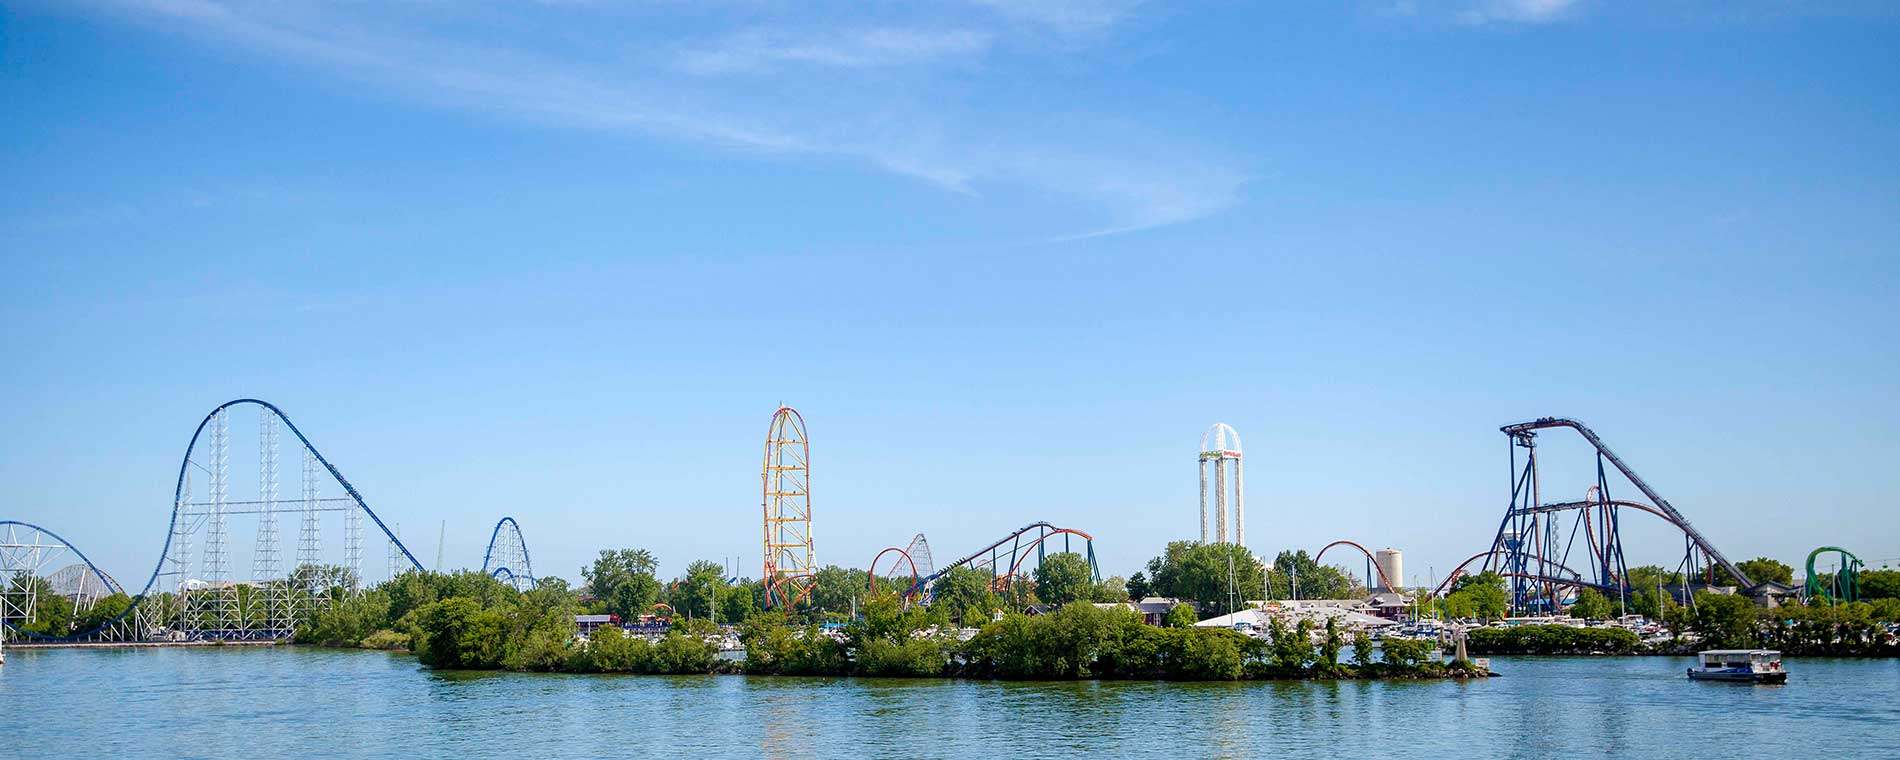 Play Your Way at Cedar Point